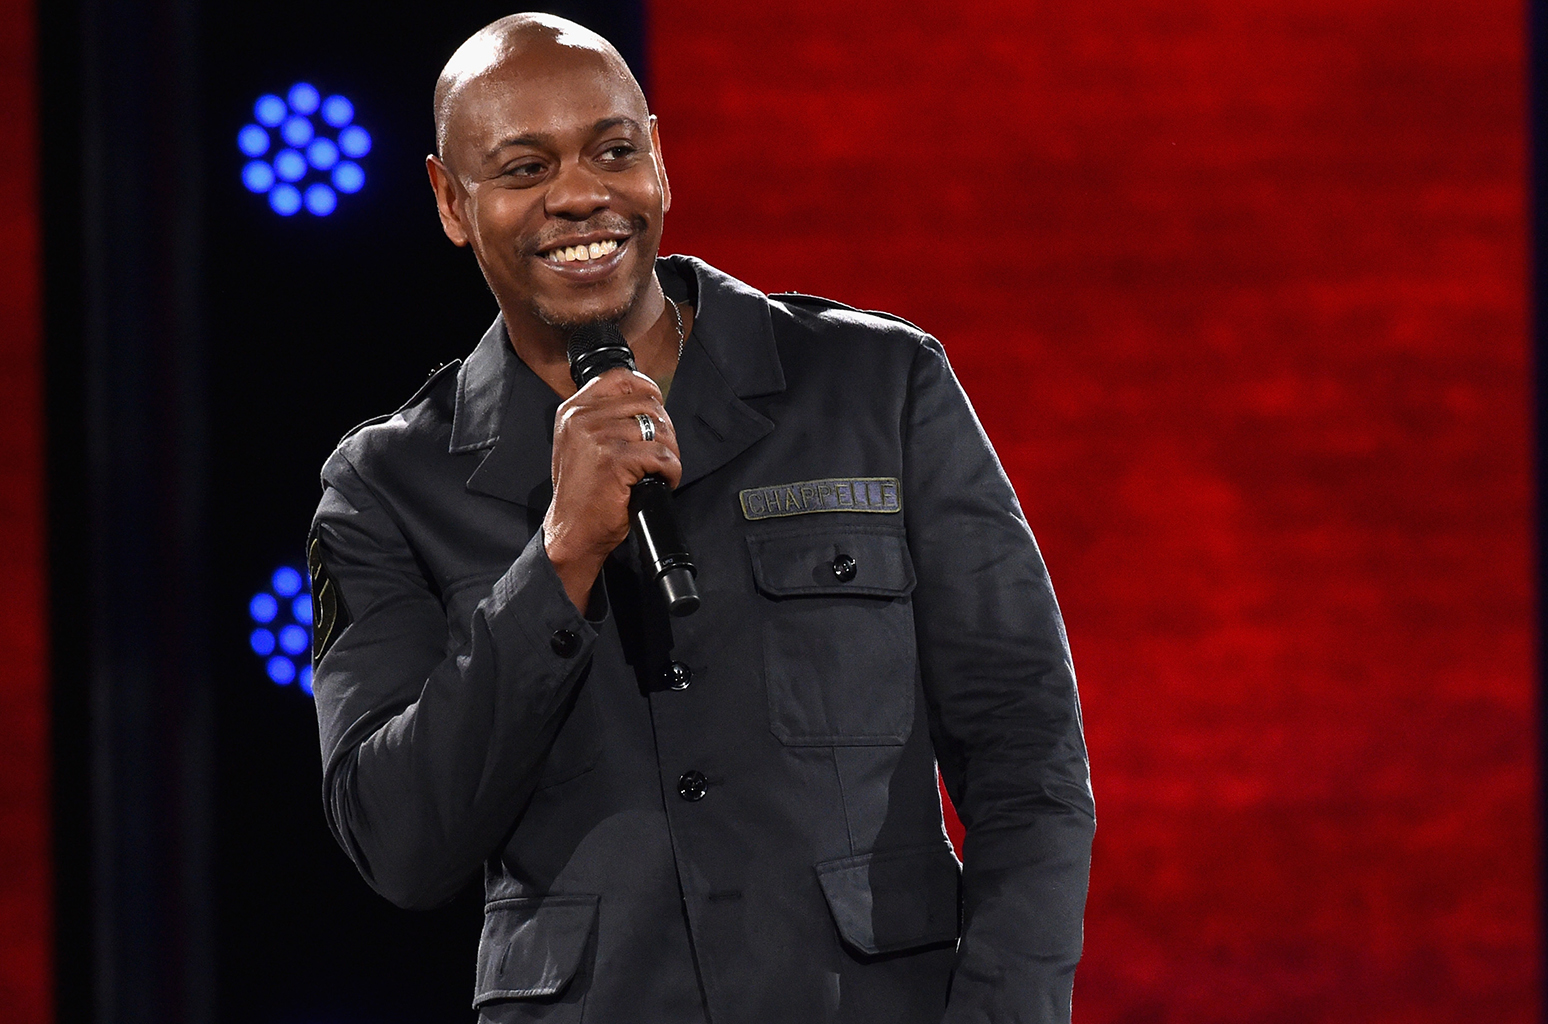 Watch A New Trailer For Dave Chappelle's Upcoming Stand-Up Specials